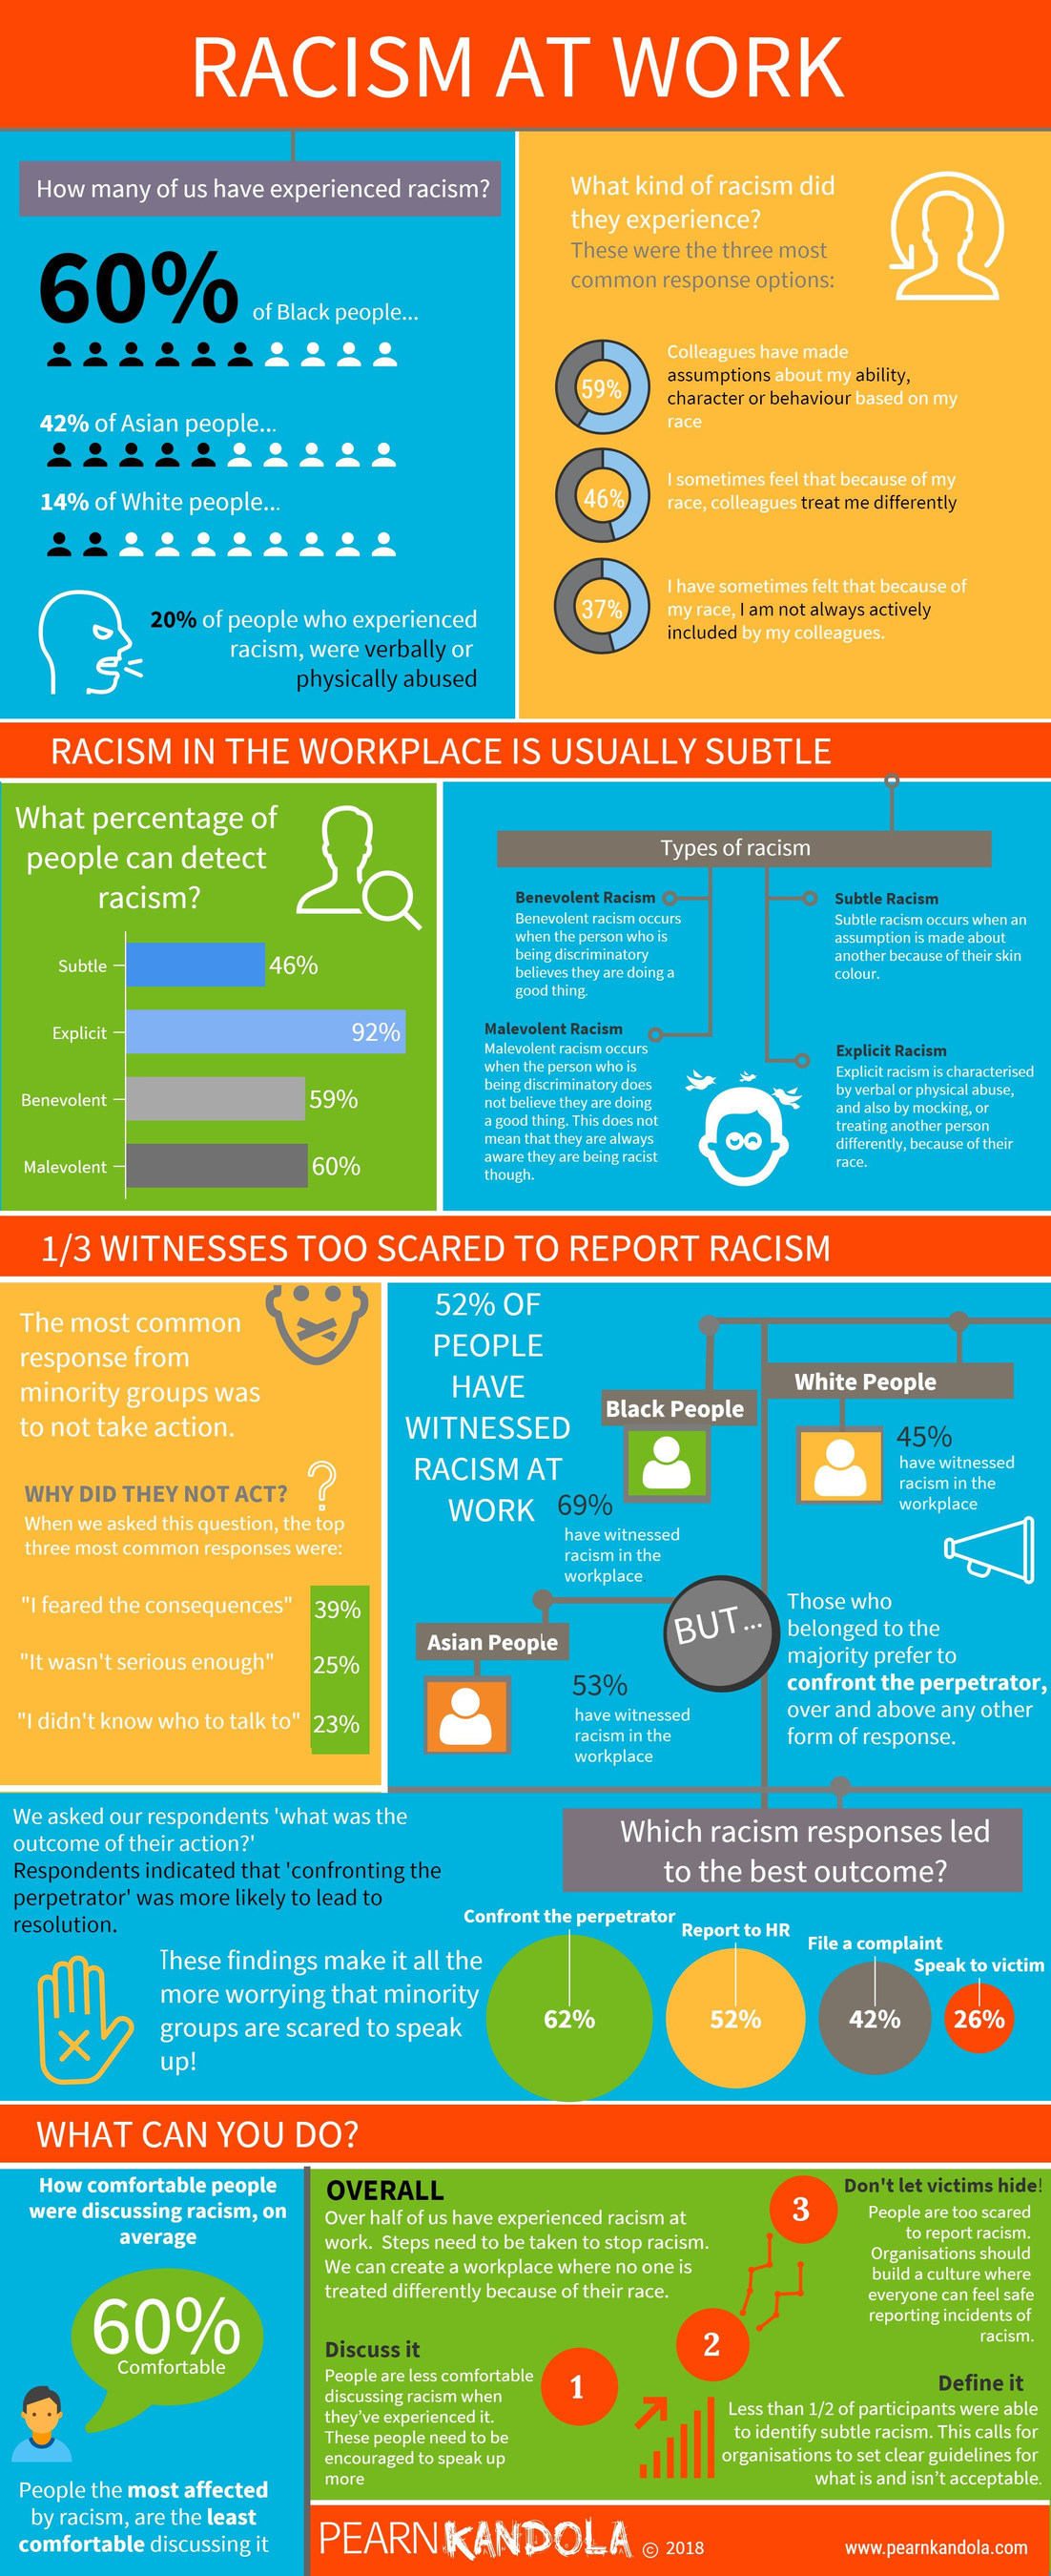 PEARN KANDOLA RACISM AT WORK INFOGRAPHIC